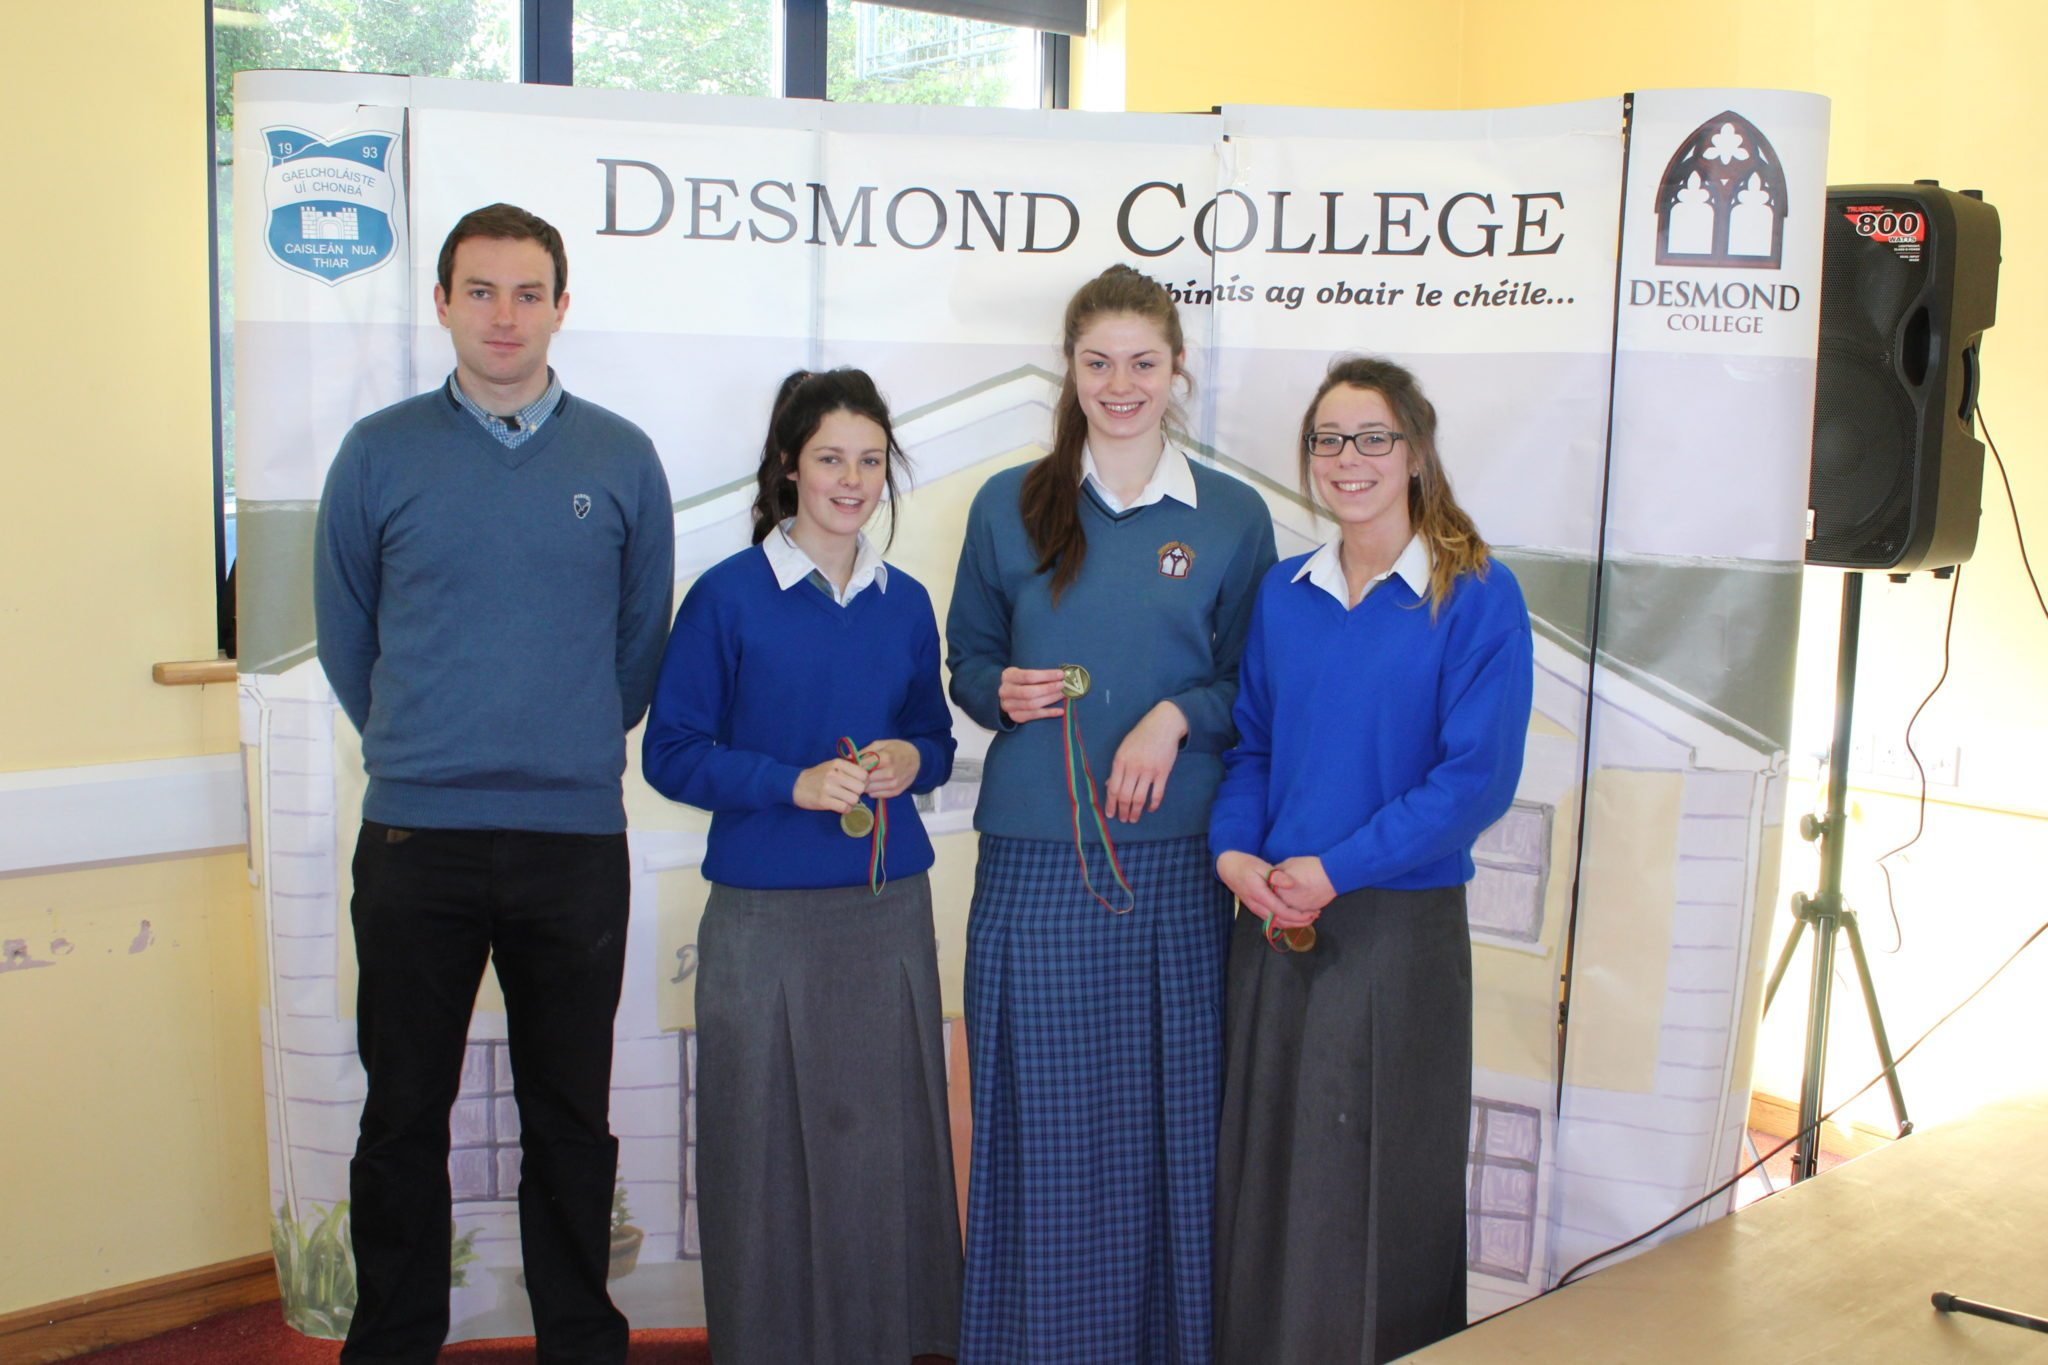 Desmond College Student Awards: May 2015: SPORTS AWARDS Fifth year : Mr Bourke with Leah Kelly, Nell Fox and Kiara Carroll